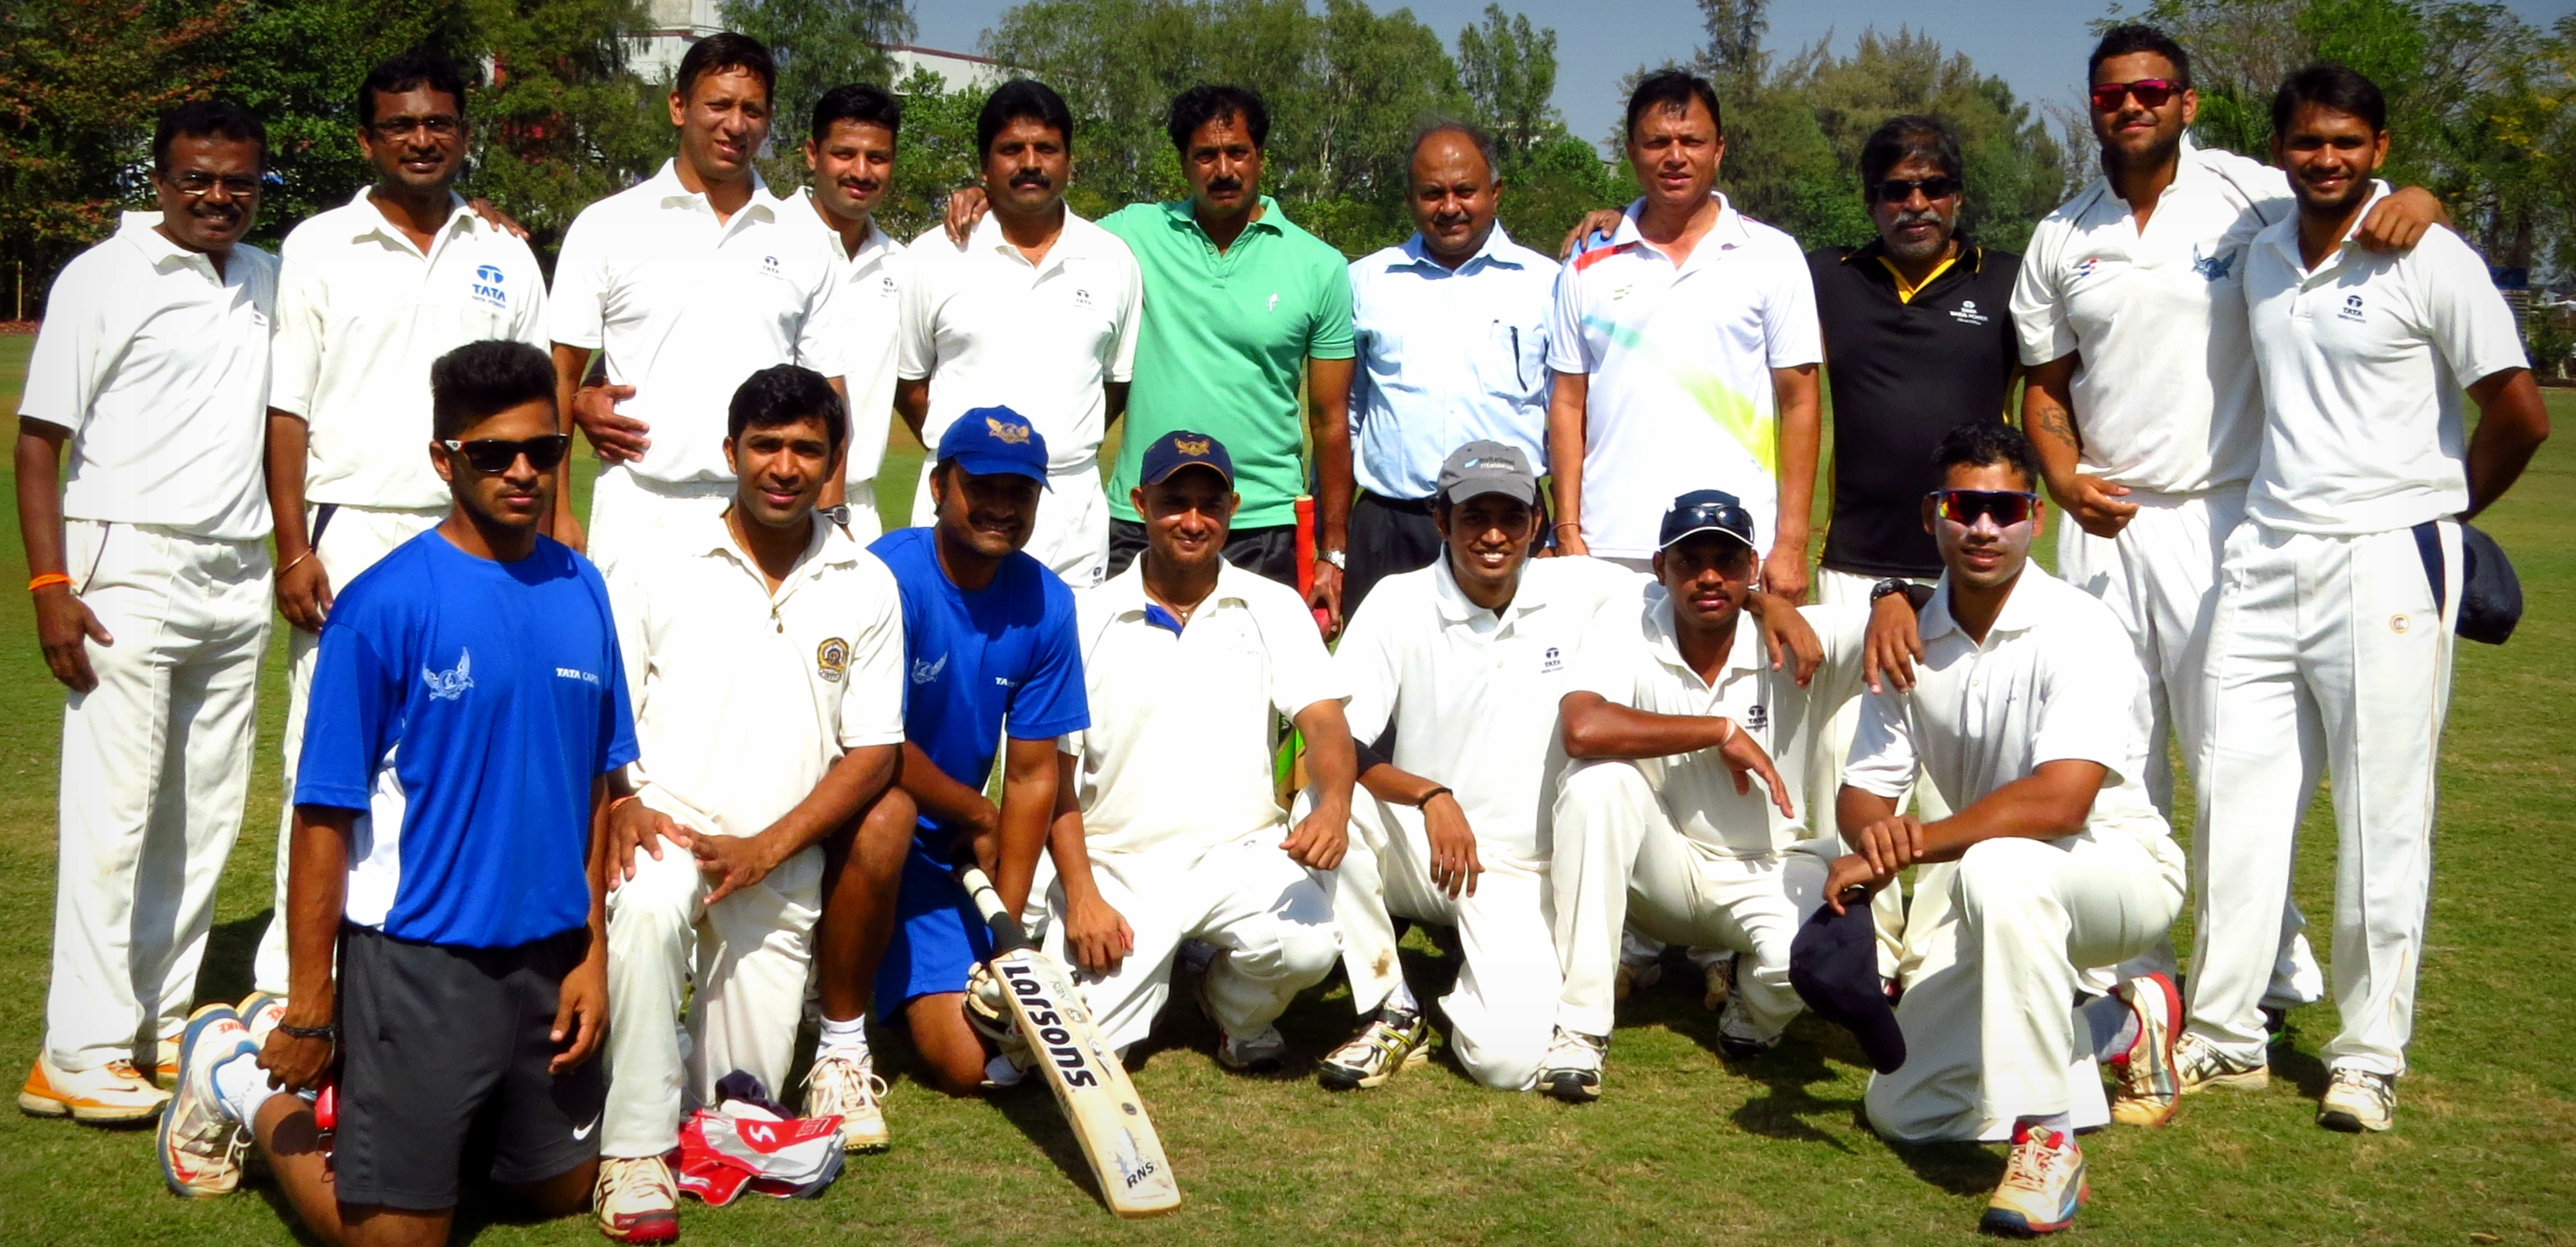 TATA POWER comfortably wins the league match against TCS in the Tata Inter Company Cricket Tournament